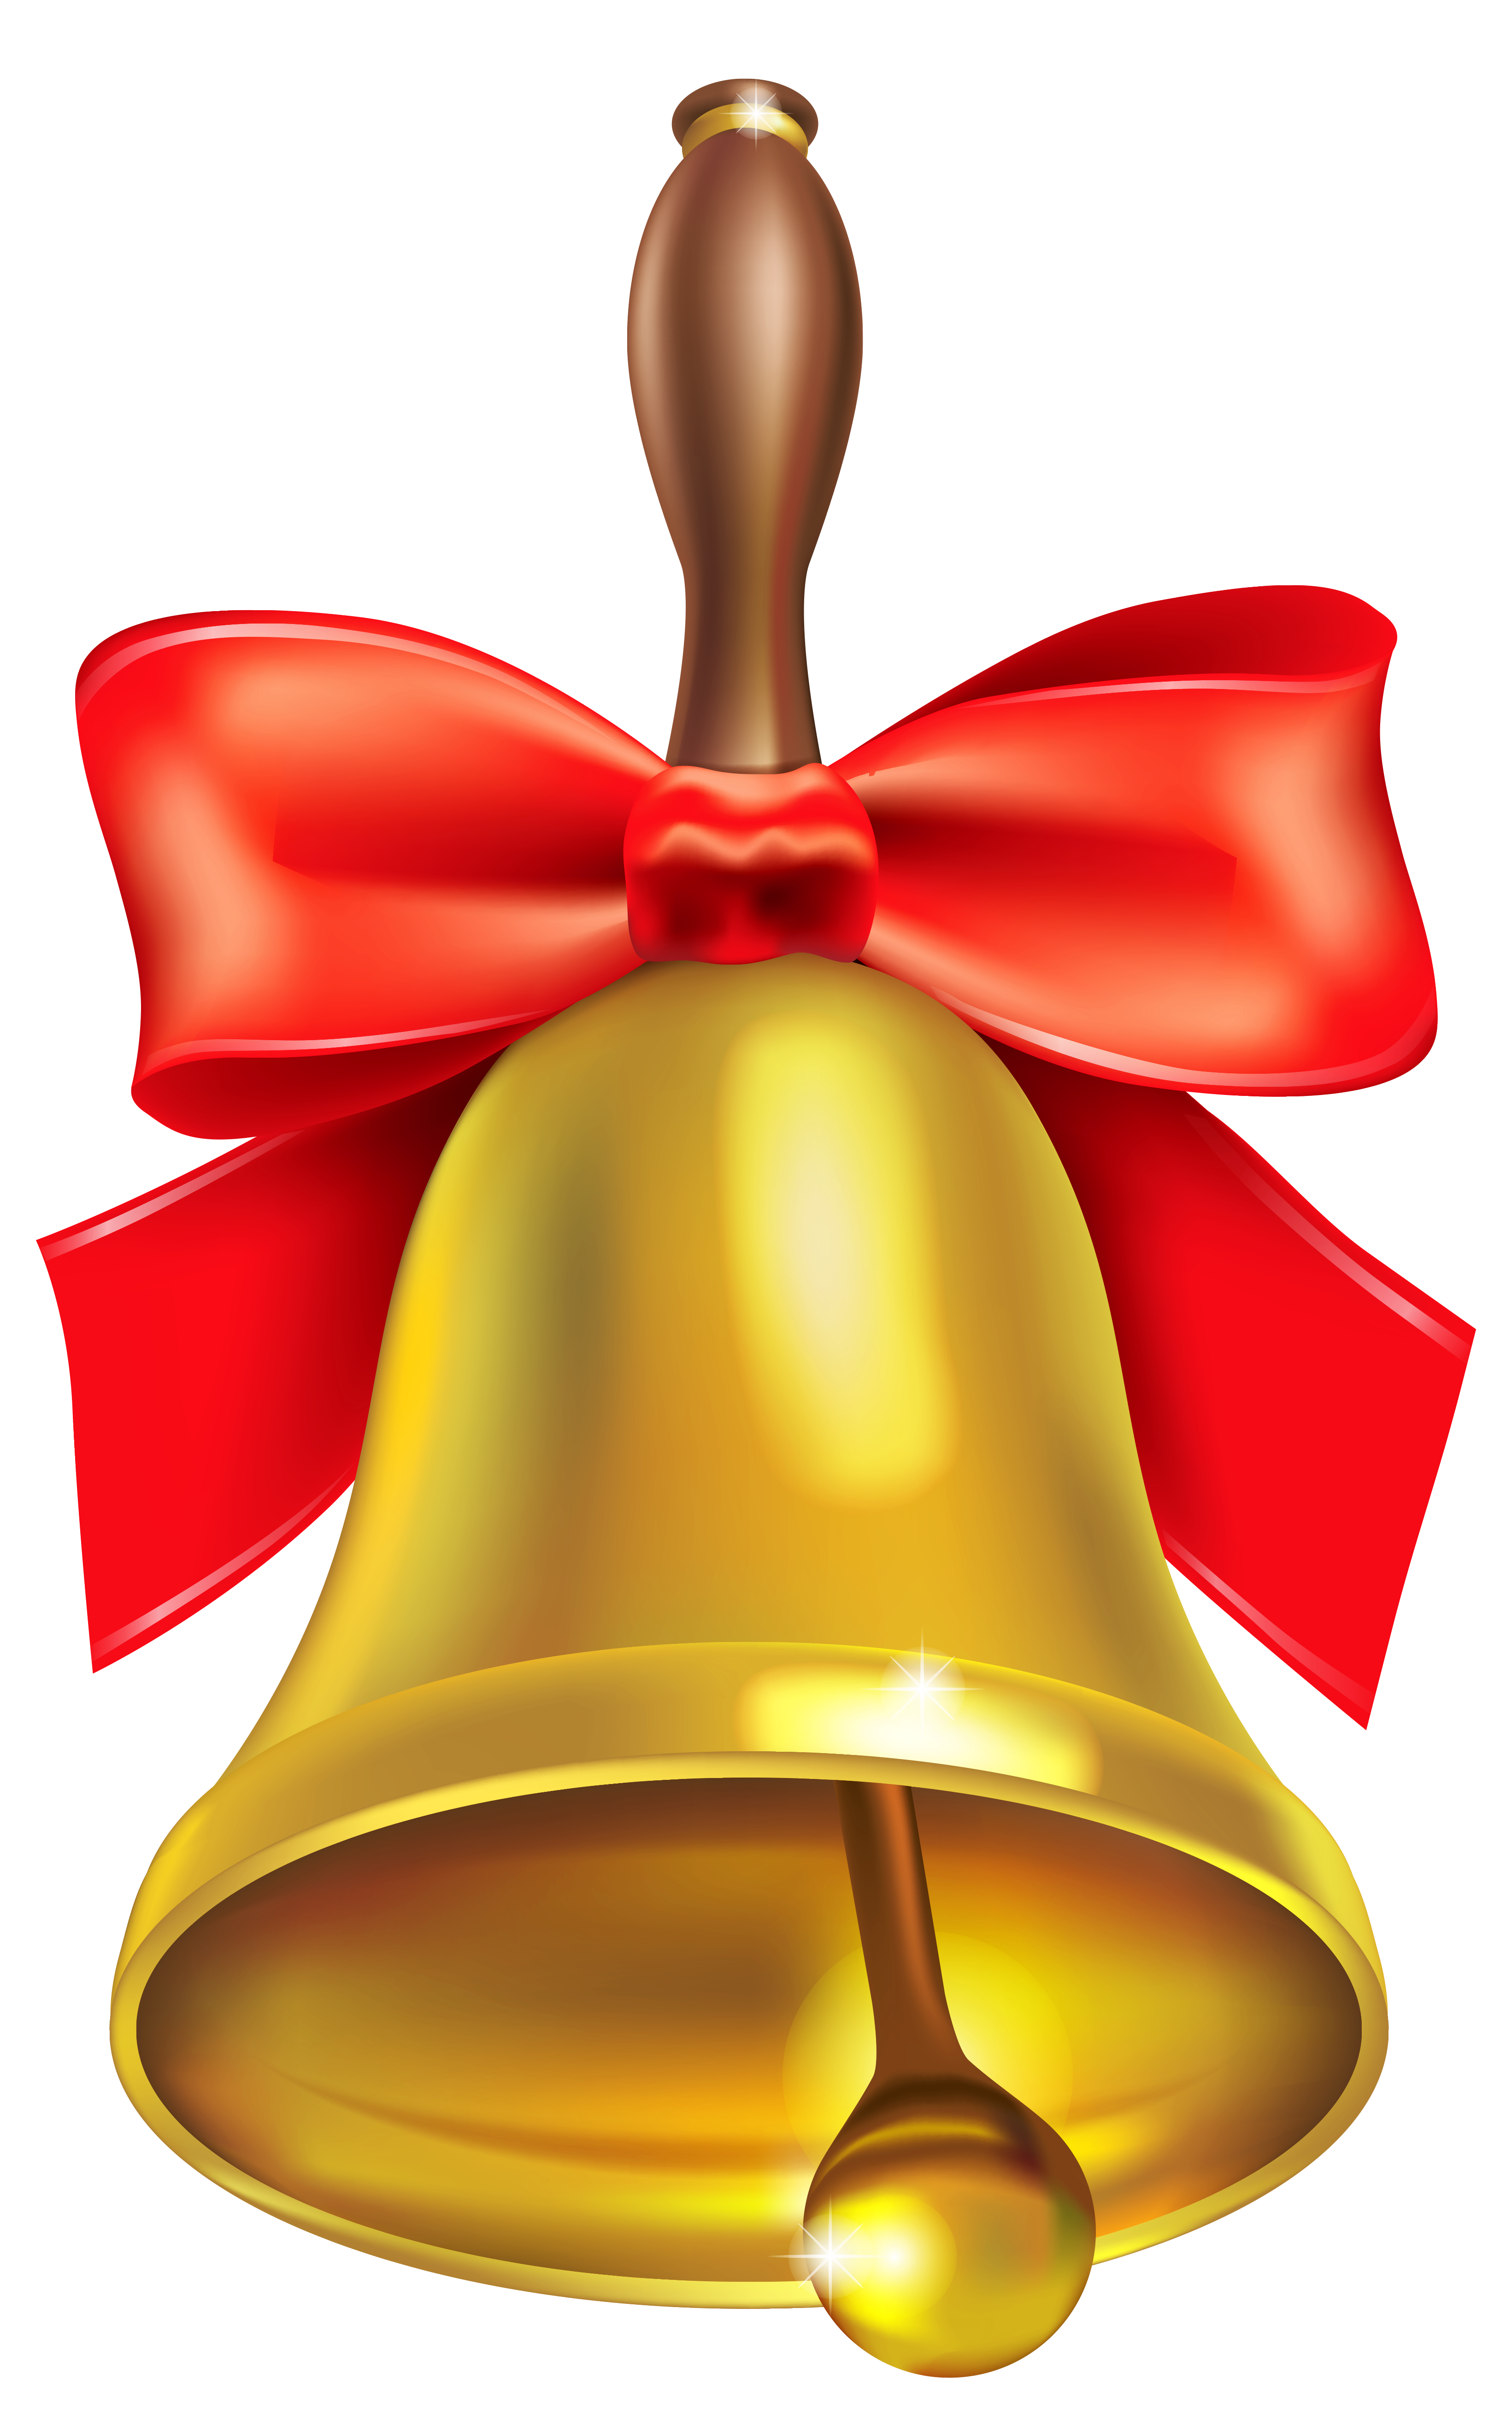 School bell png no background. Image